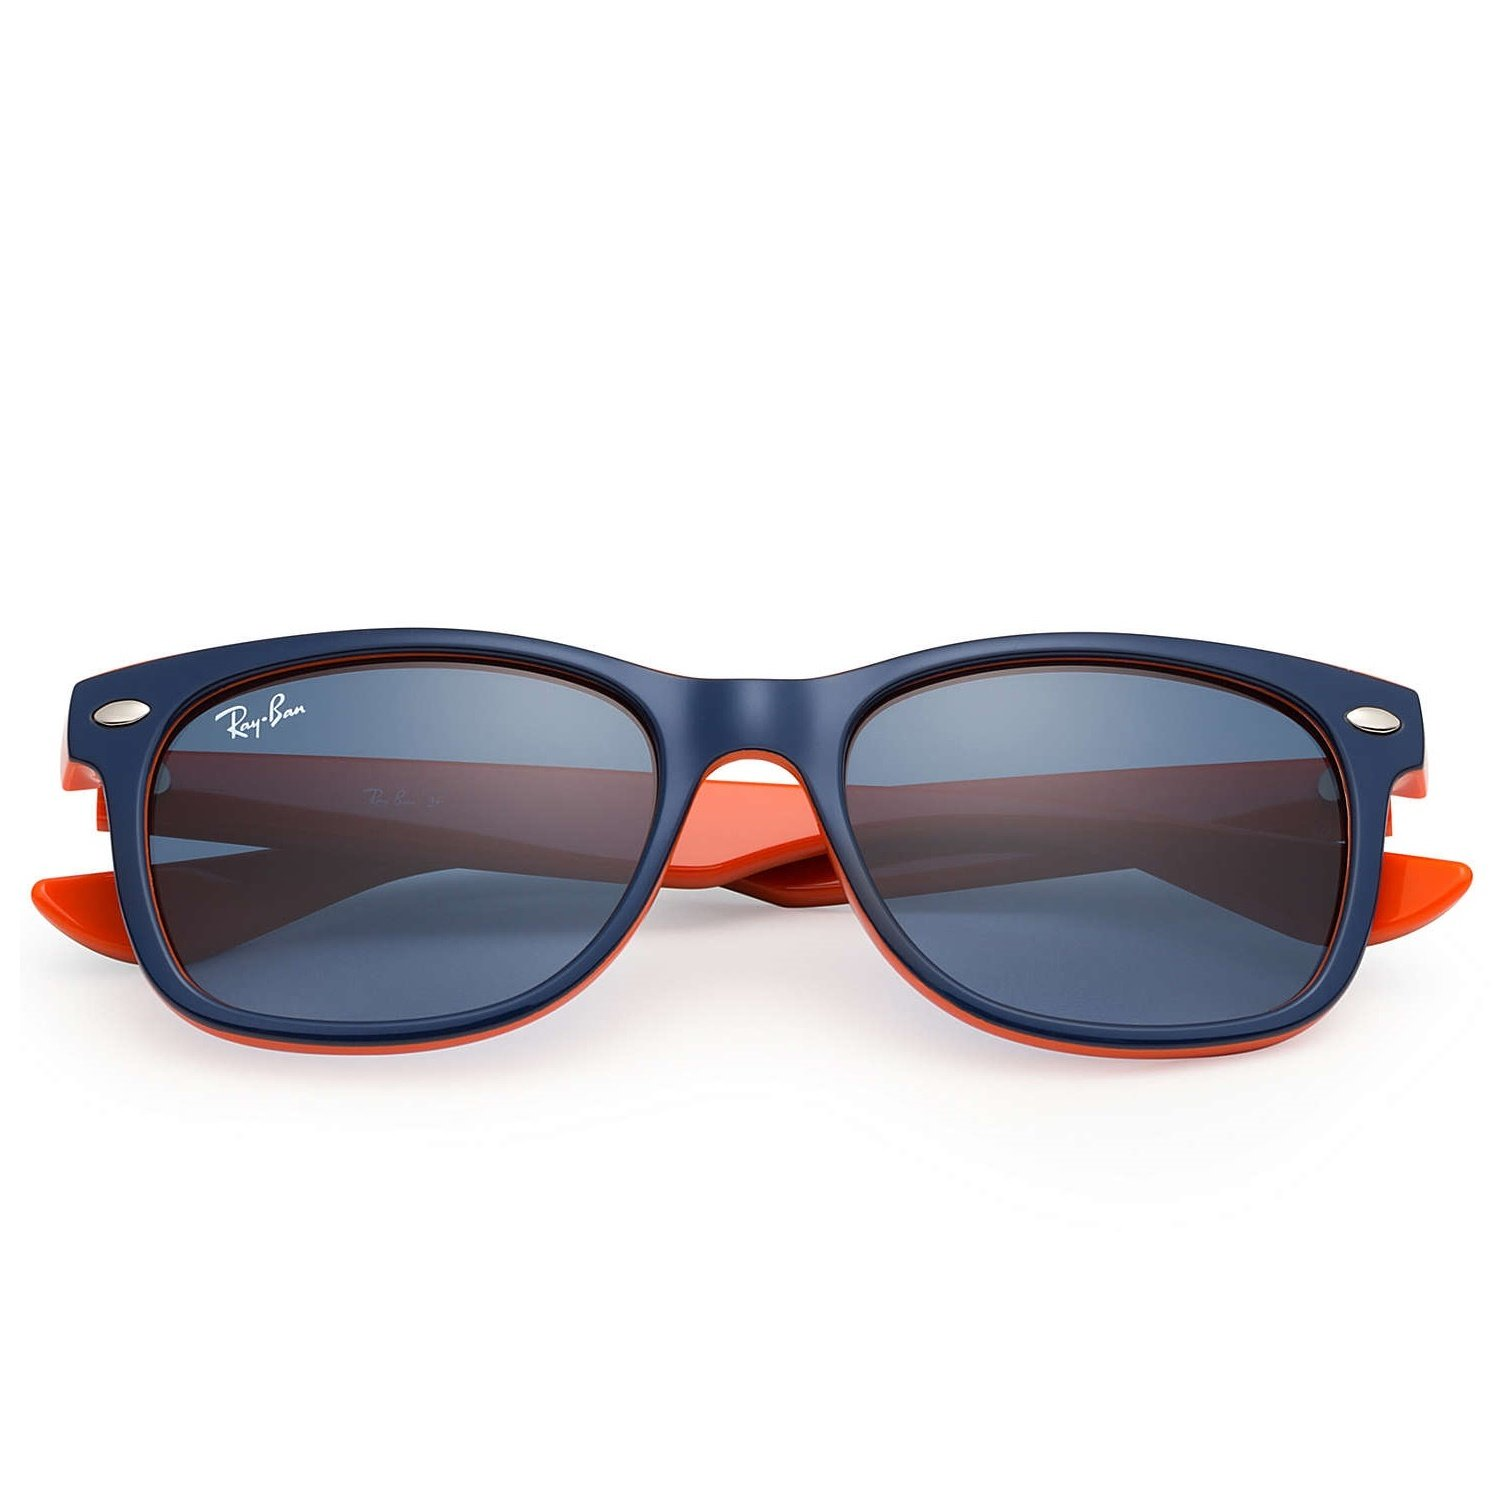 Ray-Ban Jr New Wayfarer Sunglasses - Navy/Orange - 48mm